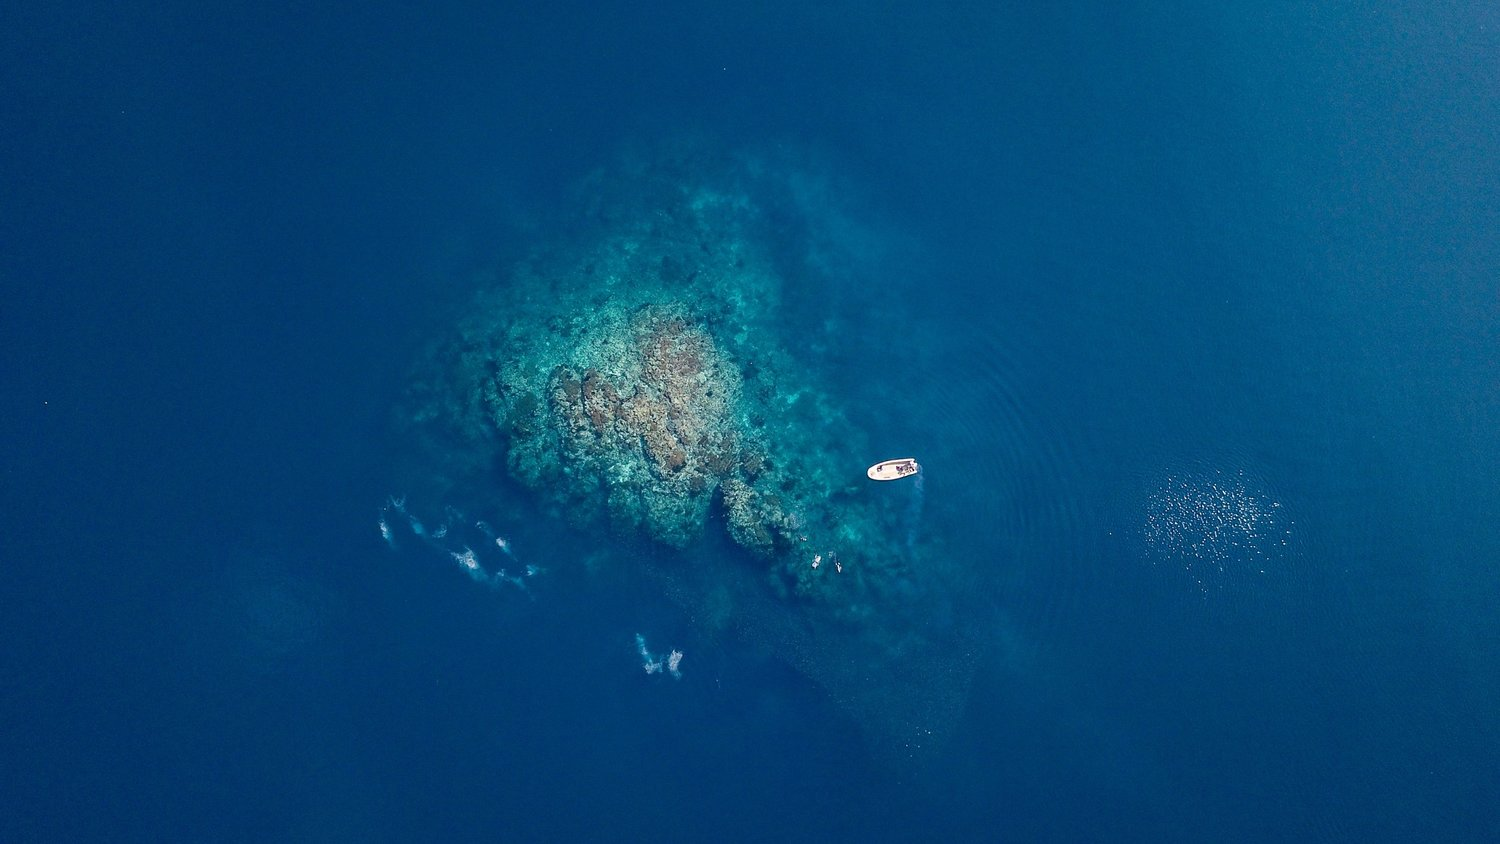 An aerial view of a boat in the middle of ocean